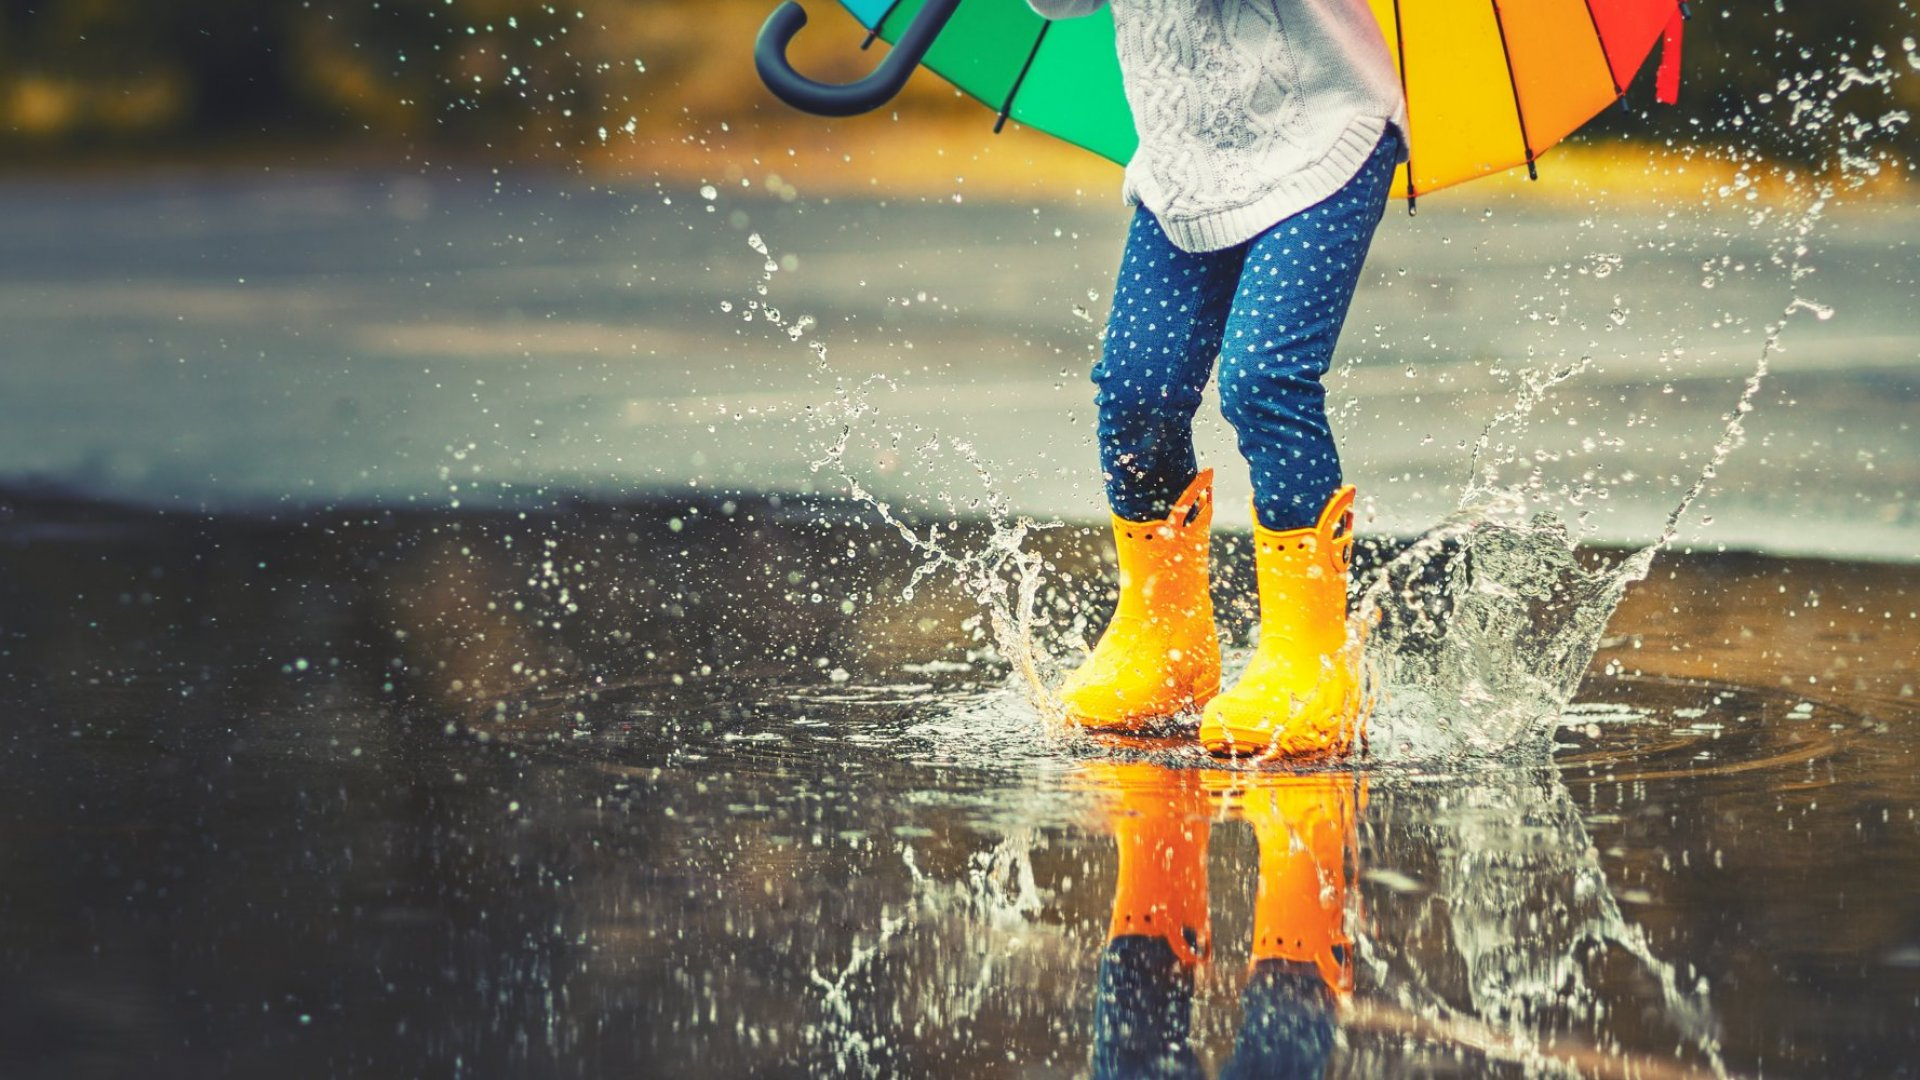 Every Business Needs a Rainy Day Fund. Here's How to Calculate Yours